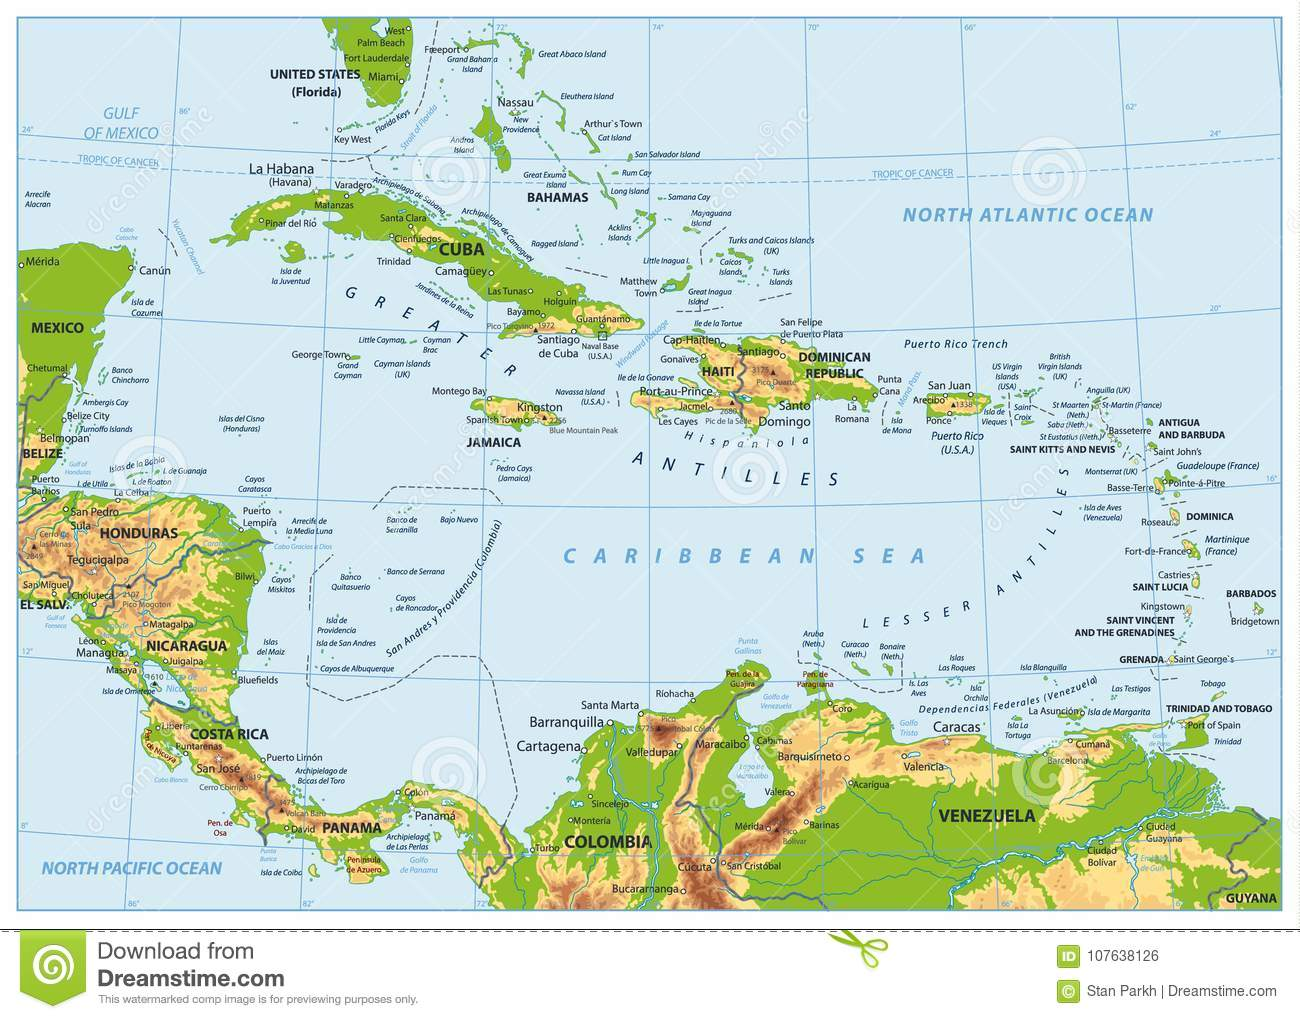 The Caribbean Physical Map. No Bathymetry Stock Vector ... on map of s america and caribbean, time zone map of caribbean, satellite map of caribbean, large map of the caribbean, political map of caribbean, world map caribbean, map of middle america and caribbean, geography of caribbean, color map of caribbean, elevation of caribbean, full map of caribbean, topographic map of caribbean, educational map of caribbean, outline map of caribbean, relief map of caribbean, blank map of caribbean, culture of caribbean, population density map of caribbean, map of of caribbean, physical features of caribbean islands,